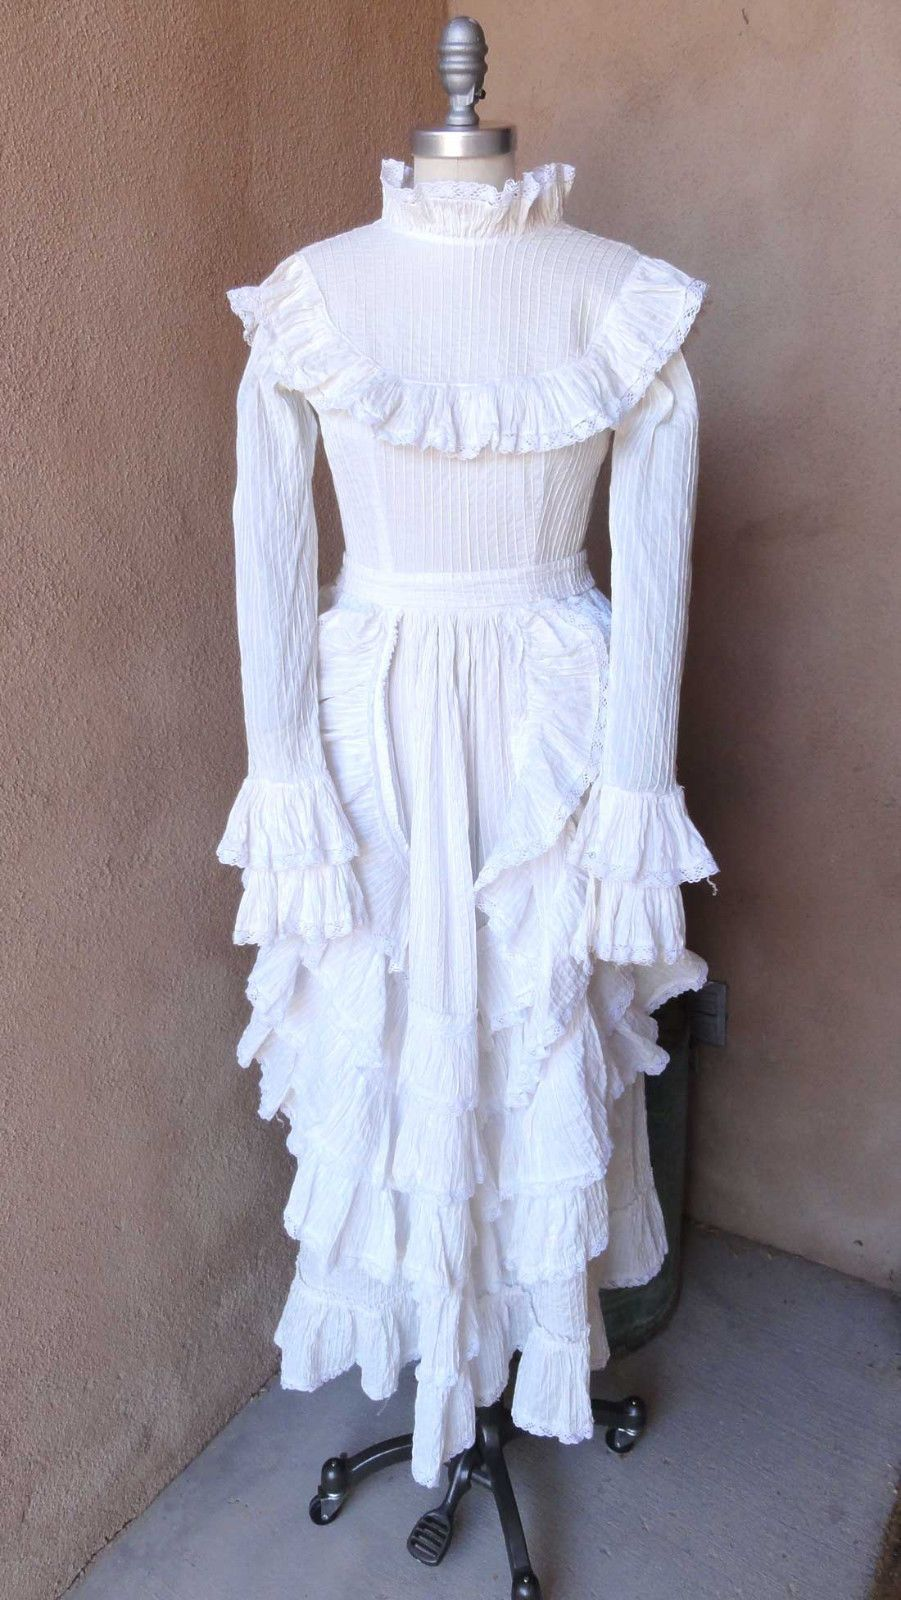 Vtg 70s Fred Leighton Mexican Wedding Dress Ivory Pintucked Lace Boho Hippie Xxs Ebay: Mexican Wedding Dresses Ivory At Websimilar.org